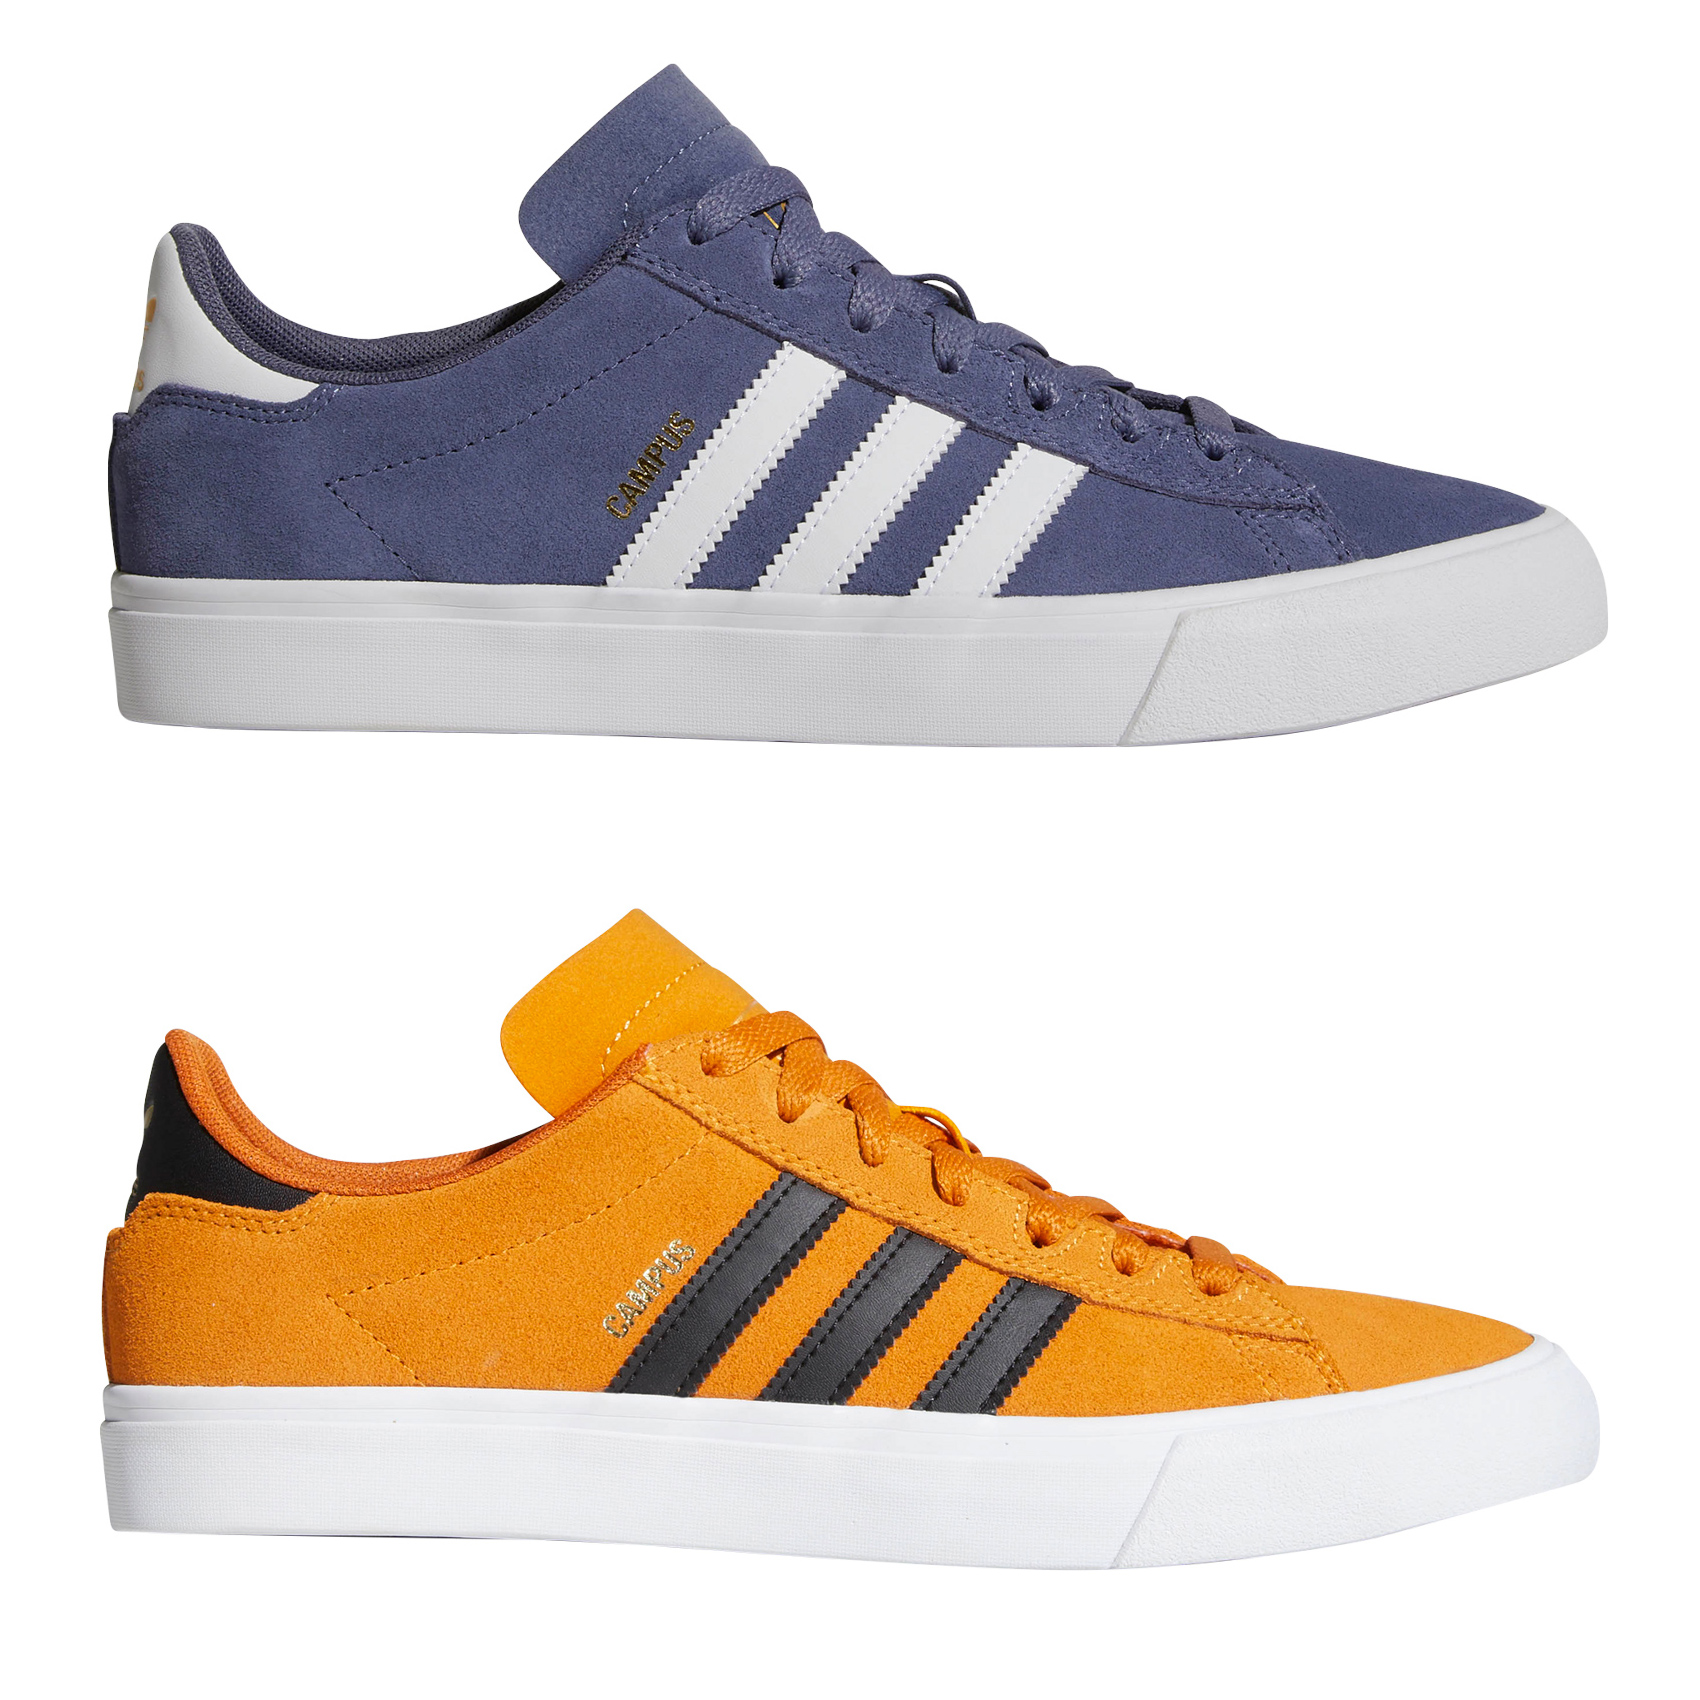 new concept 101c4 ca2e1 Sentinel Adidas Skateboarding - Campus Vulc II - Skate Shoes, Trainers,  Suede,